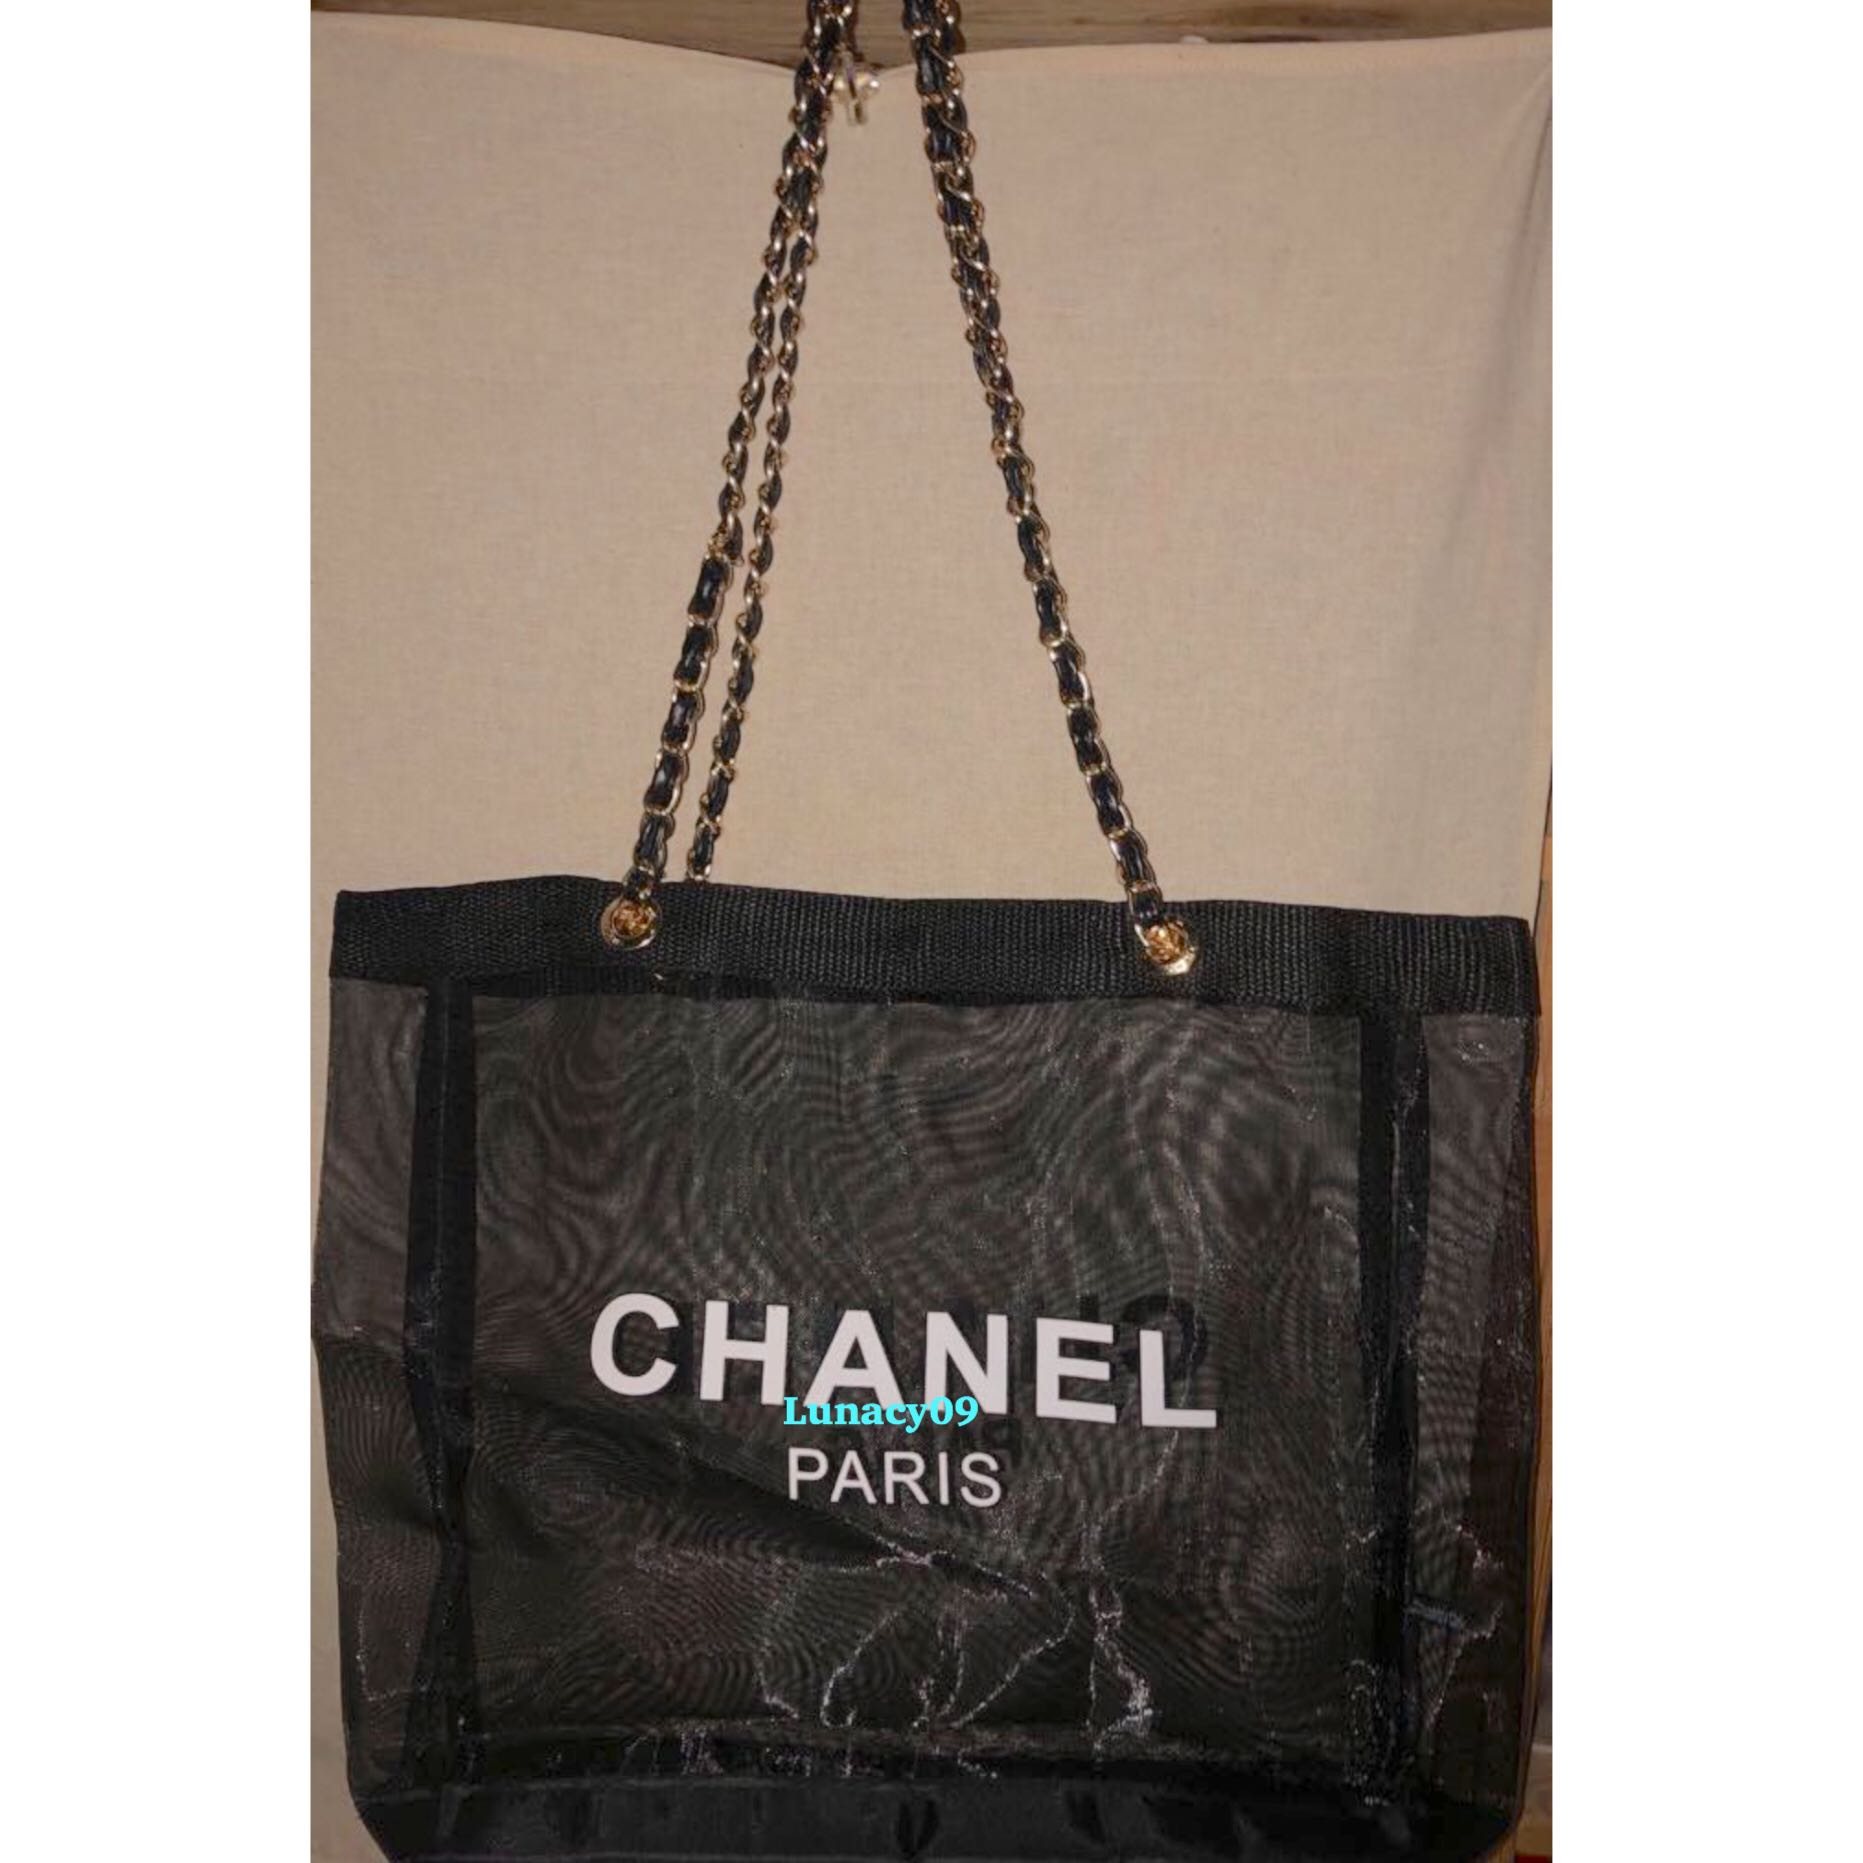 fccafca001e2 2019 Chanel Precision Makeup Summer Edition Mesh Tote Bag, Luxury, Bags &  Wallets, Handbags on Carousell